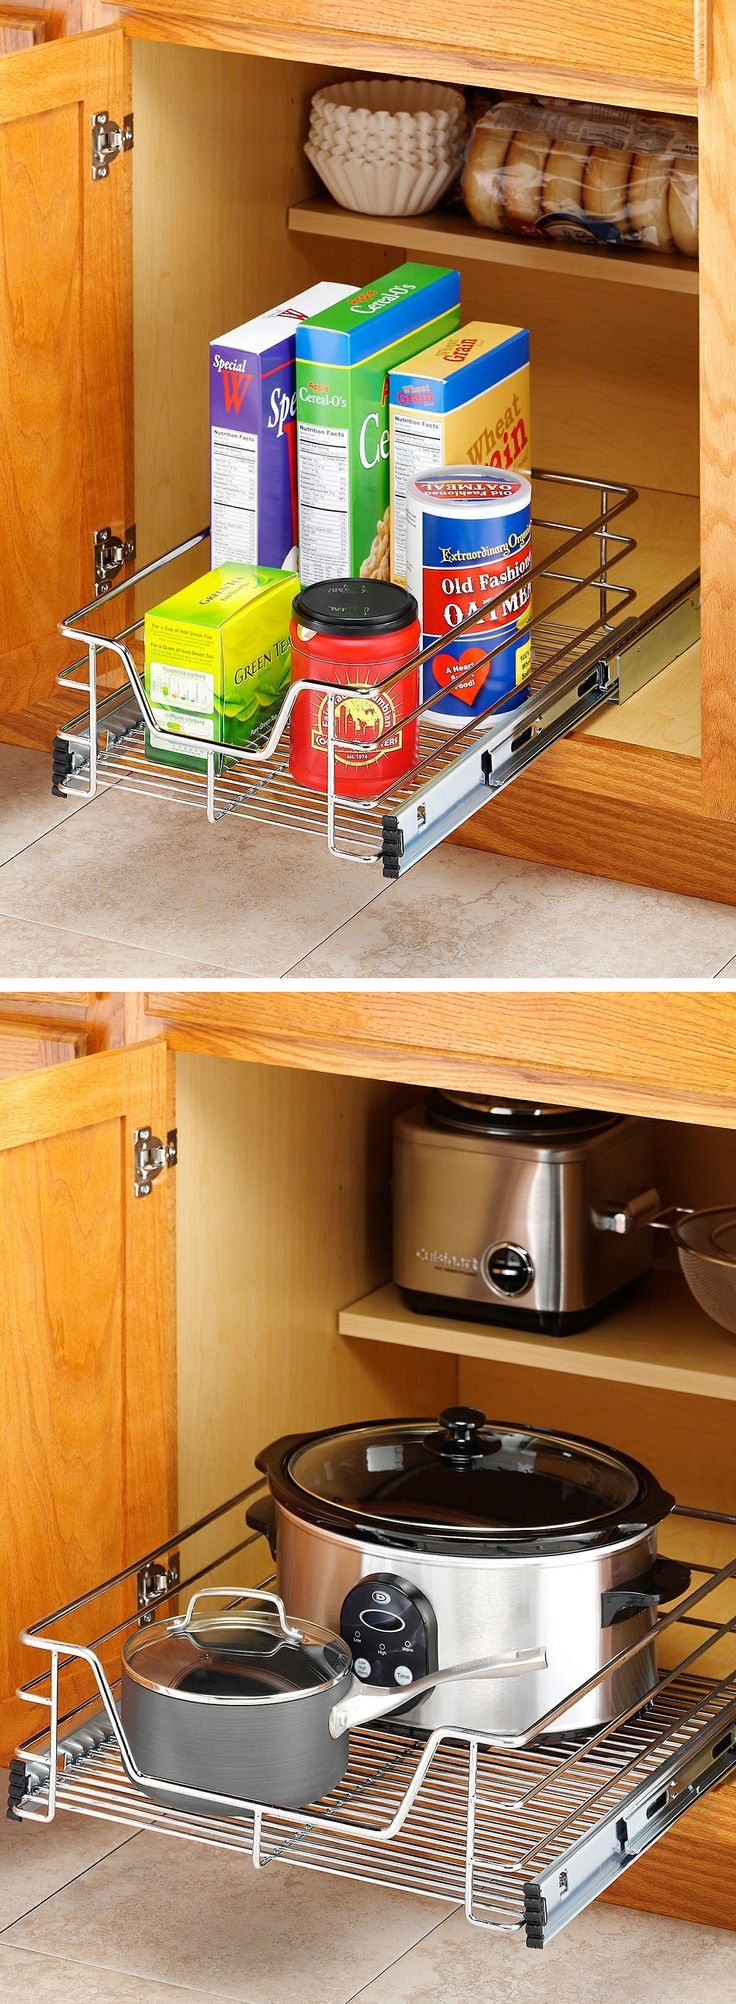 296 best Kitchen - Organized Cabinets images on Pinterest ...